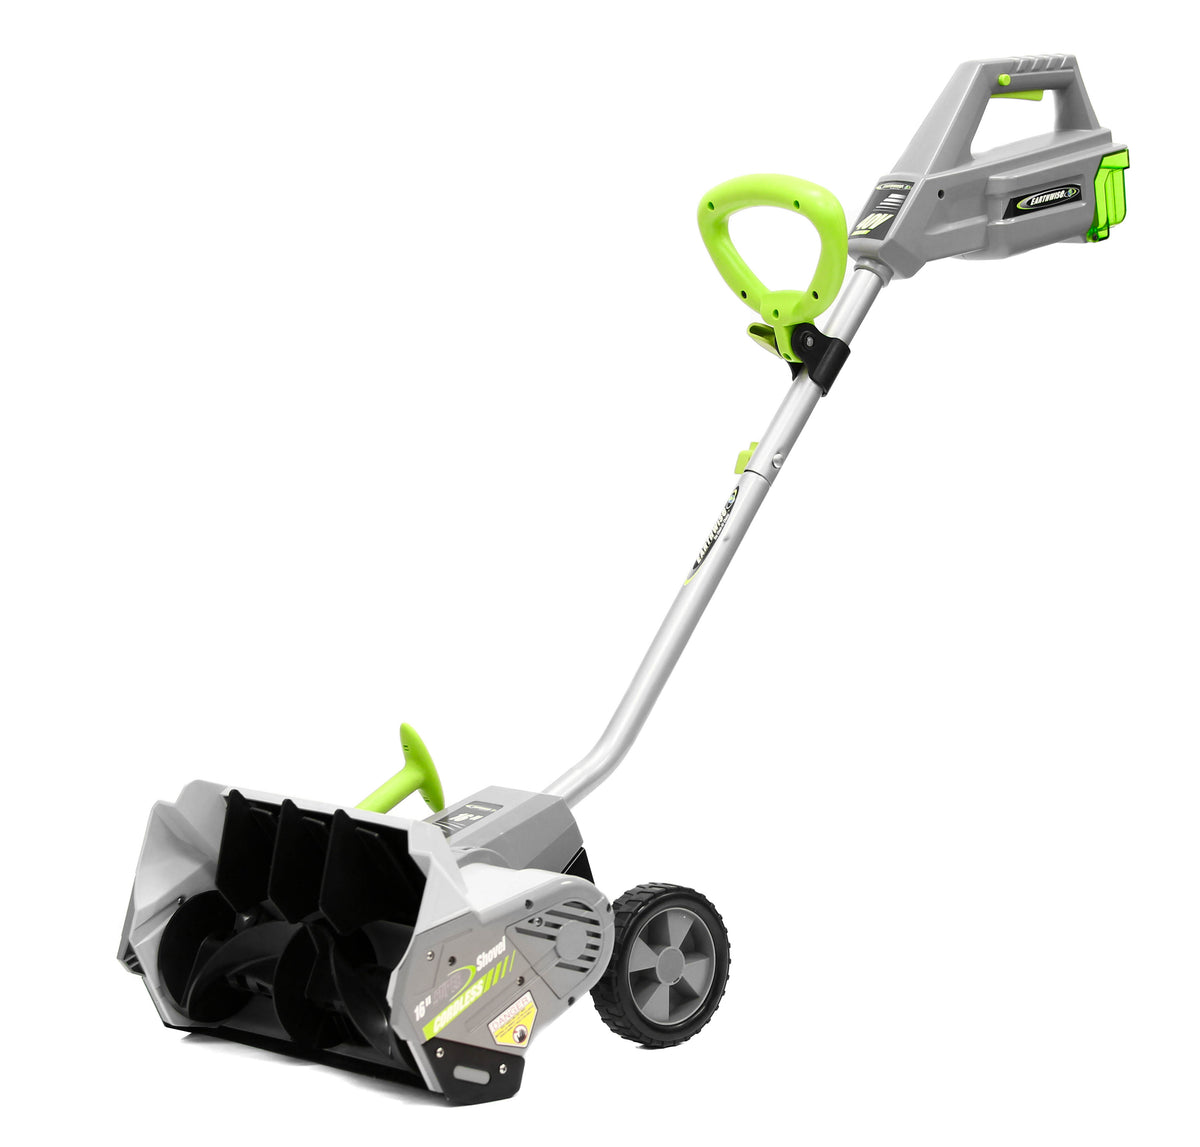 Earthwise 16 Quot 40v 4ah Lithium Snow Thrower American Lawn